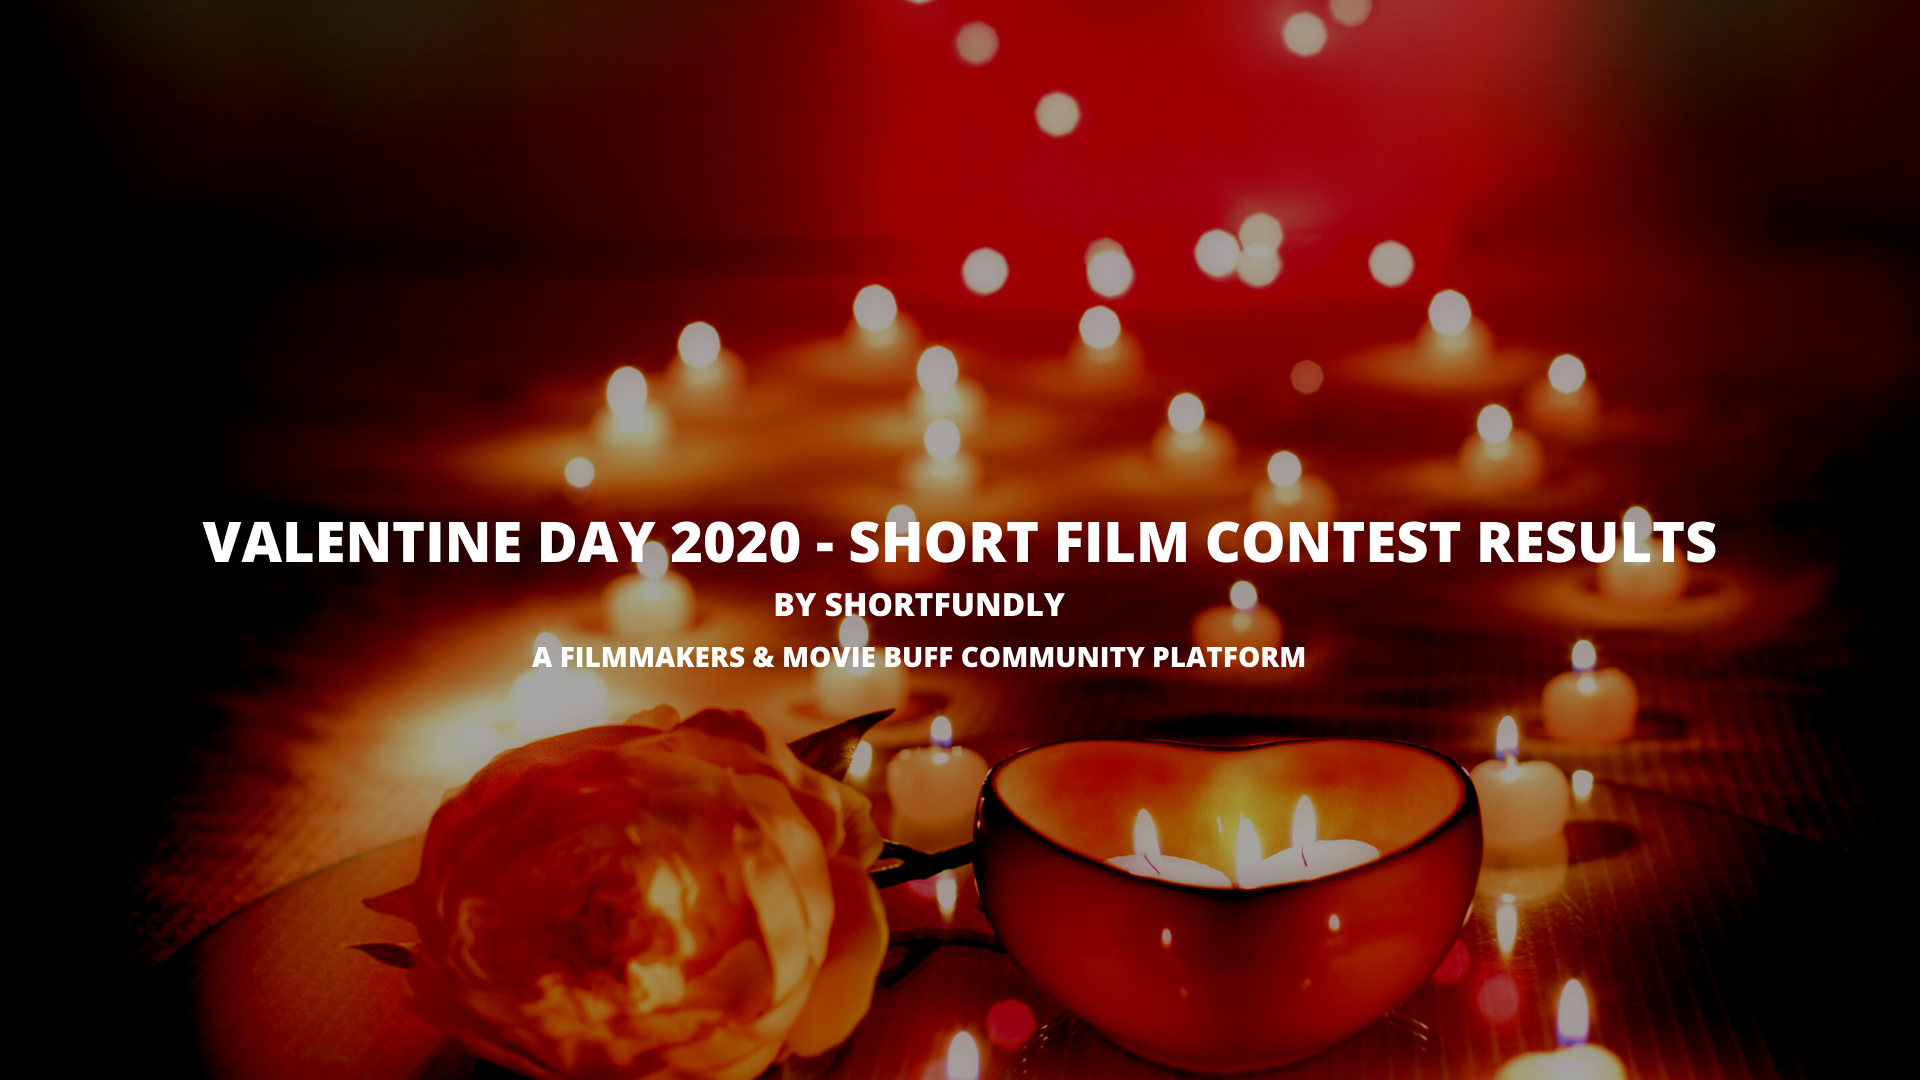 Valentine Day special short film contest 2020 results